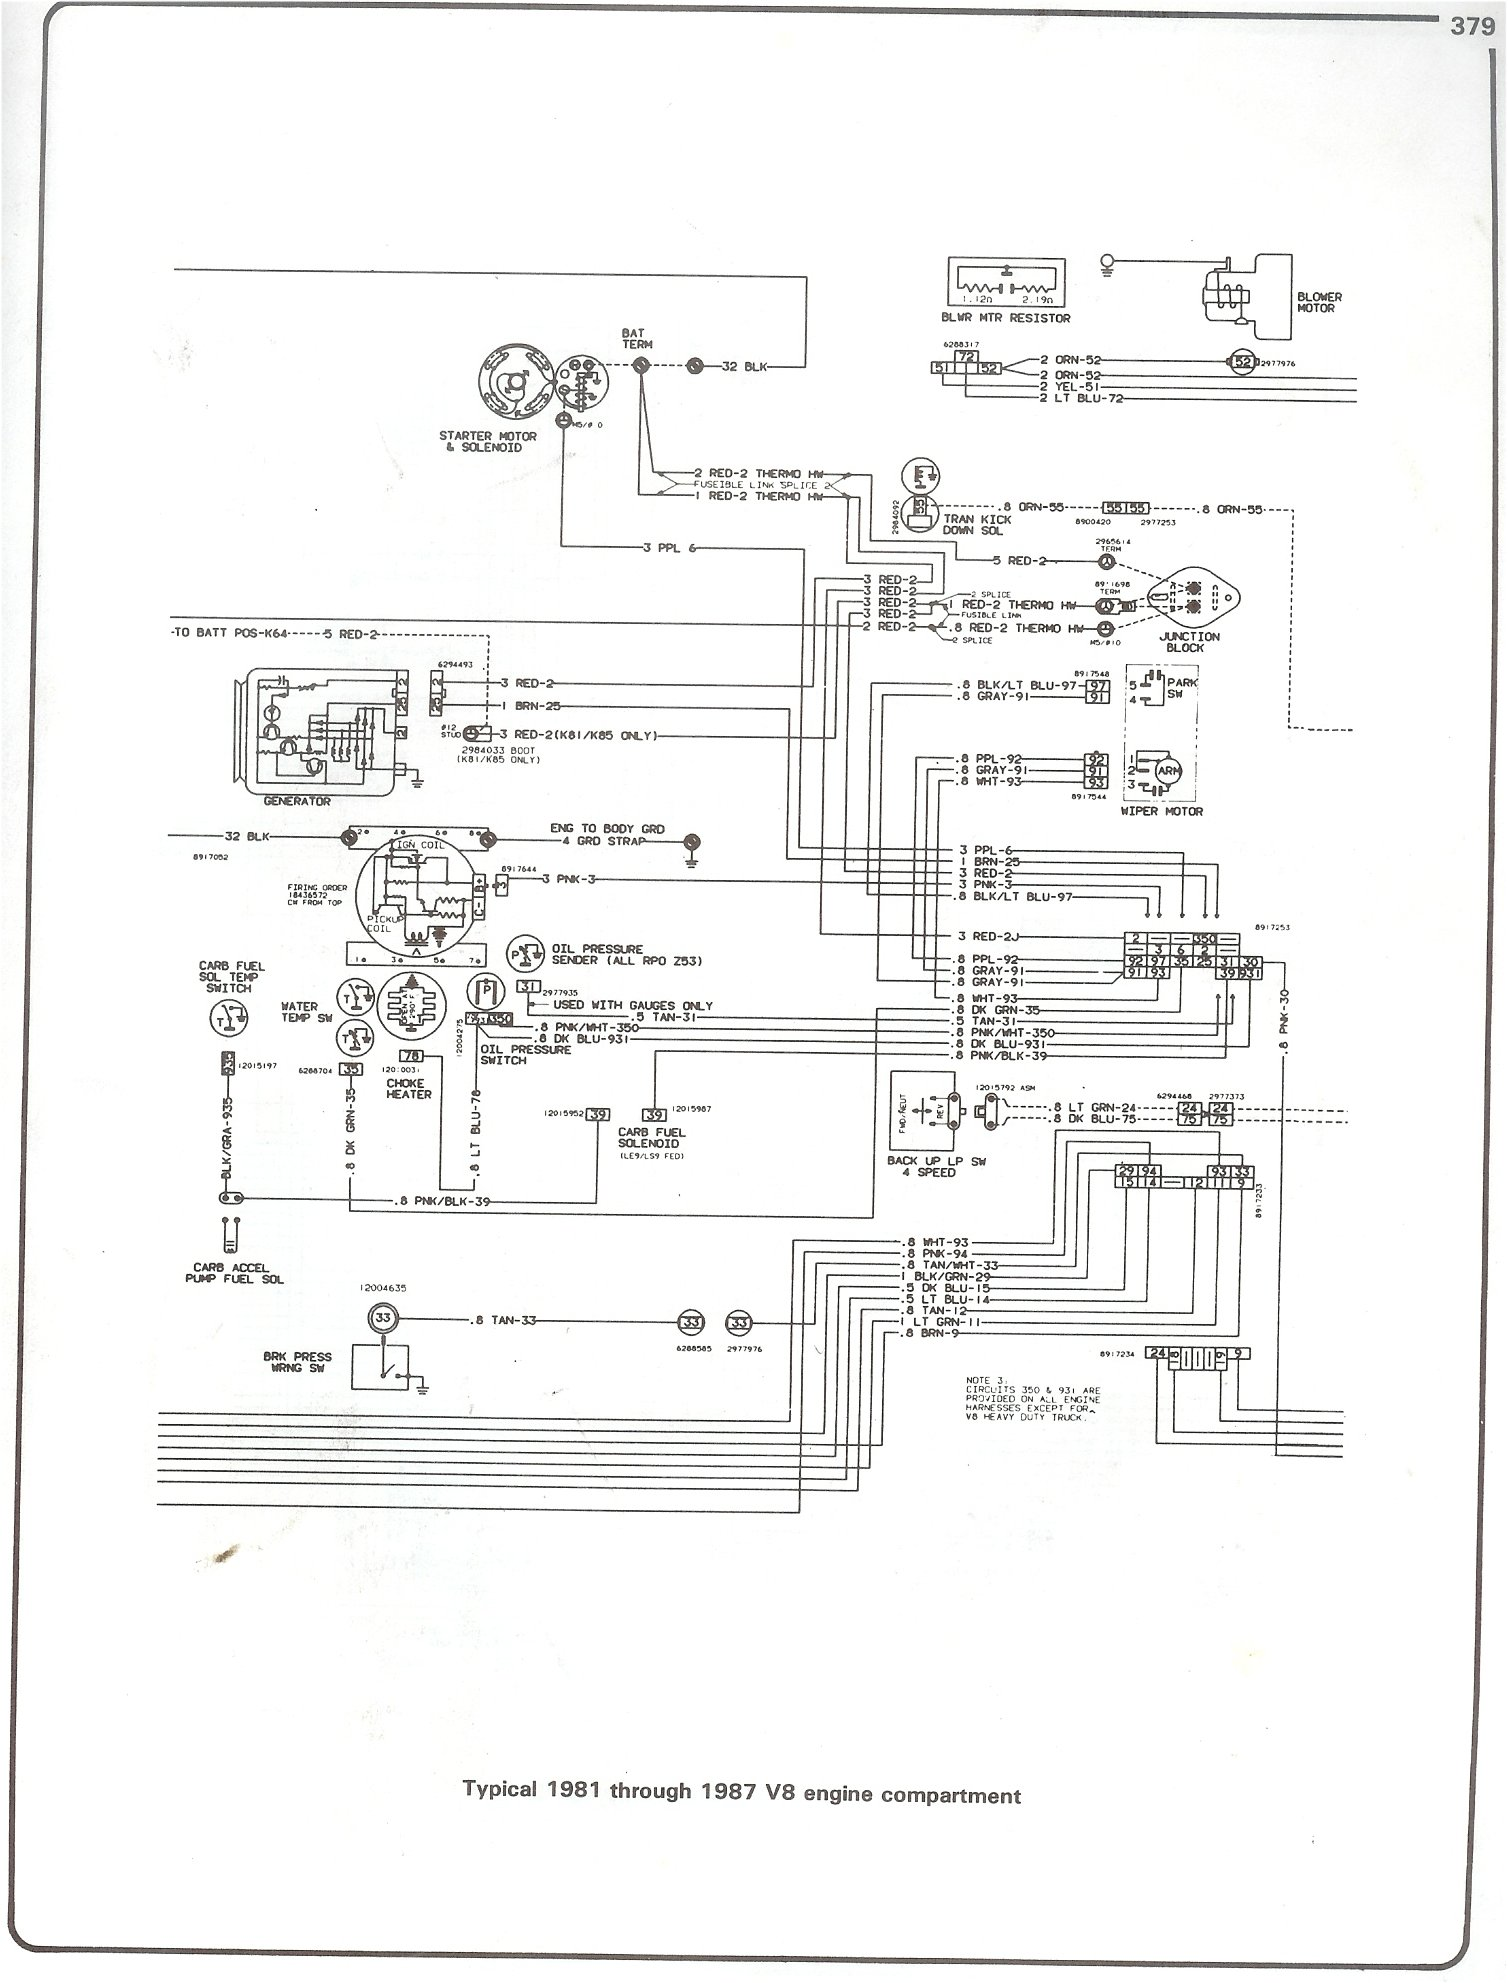 81 87_V8_engine complete 73 87 wiring diagrams 1968 Chevy C10 Wiring-Diagram at bayanpartner.co